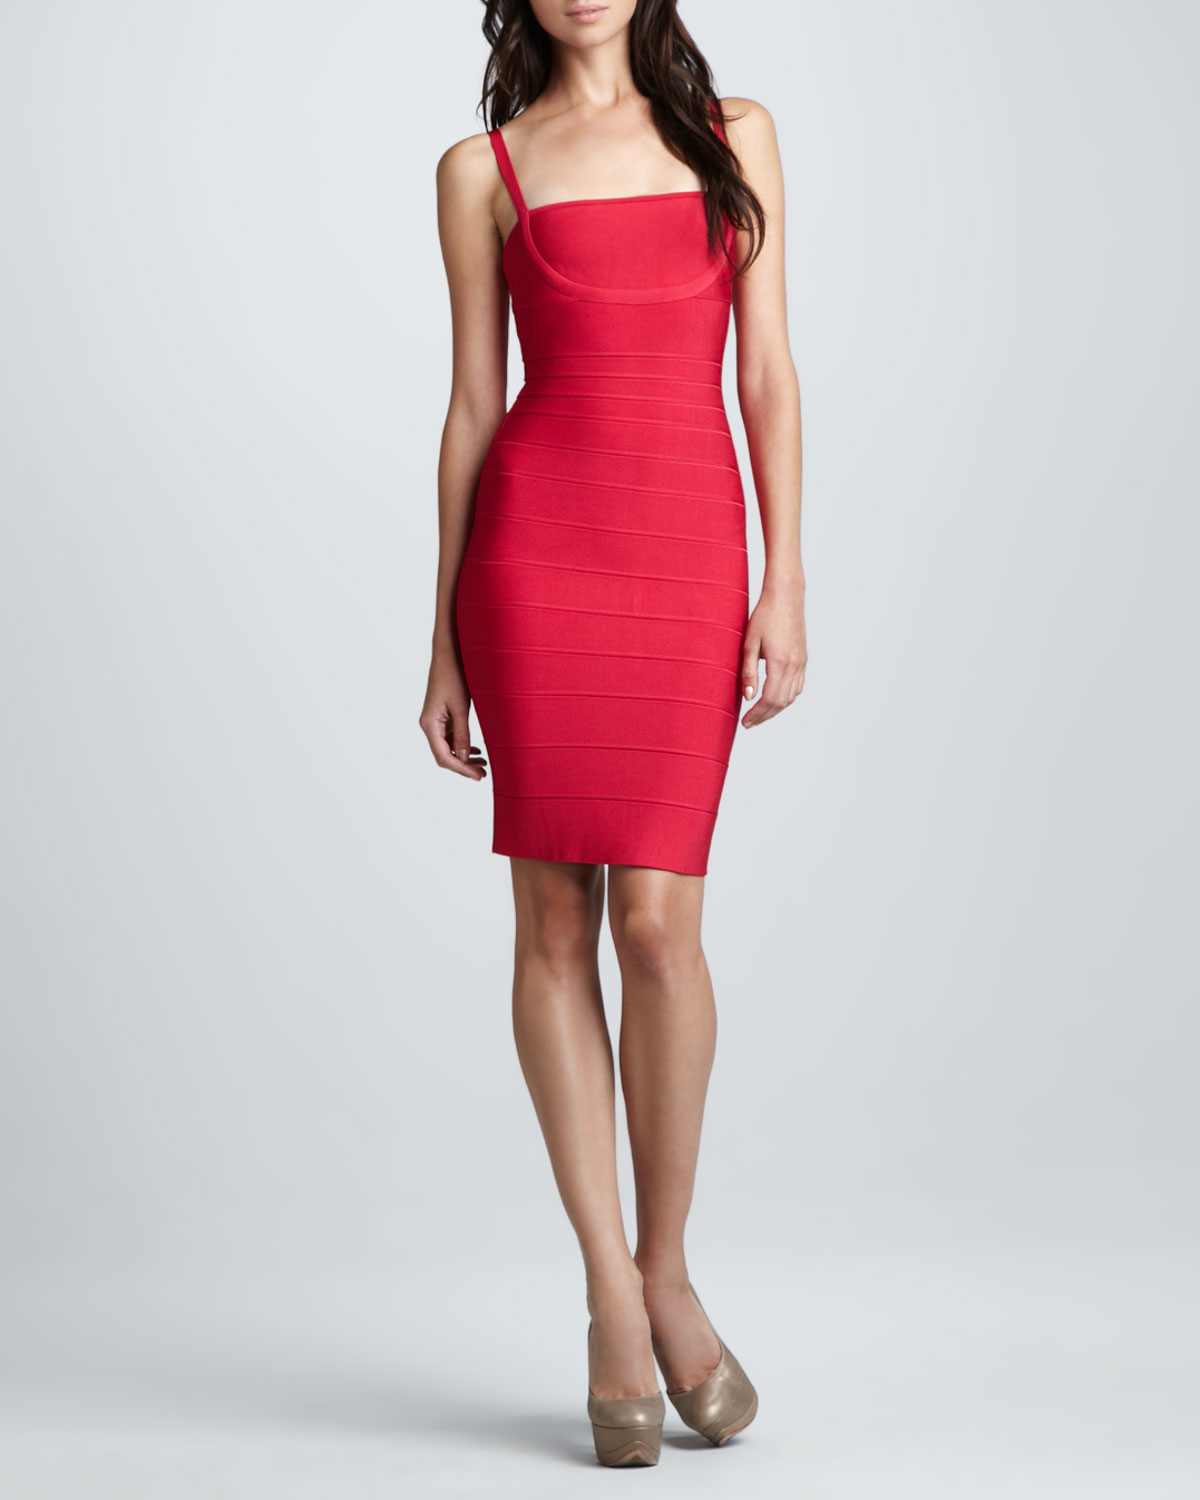 7870be29907f Lyst - Hervé Léger Womens Sleeveless Squareneck Bandage Dress in Red